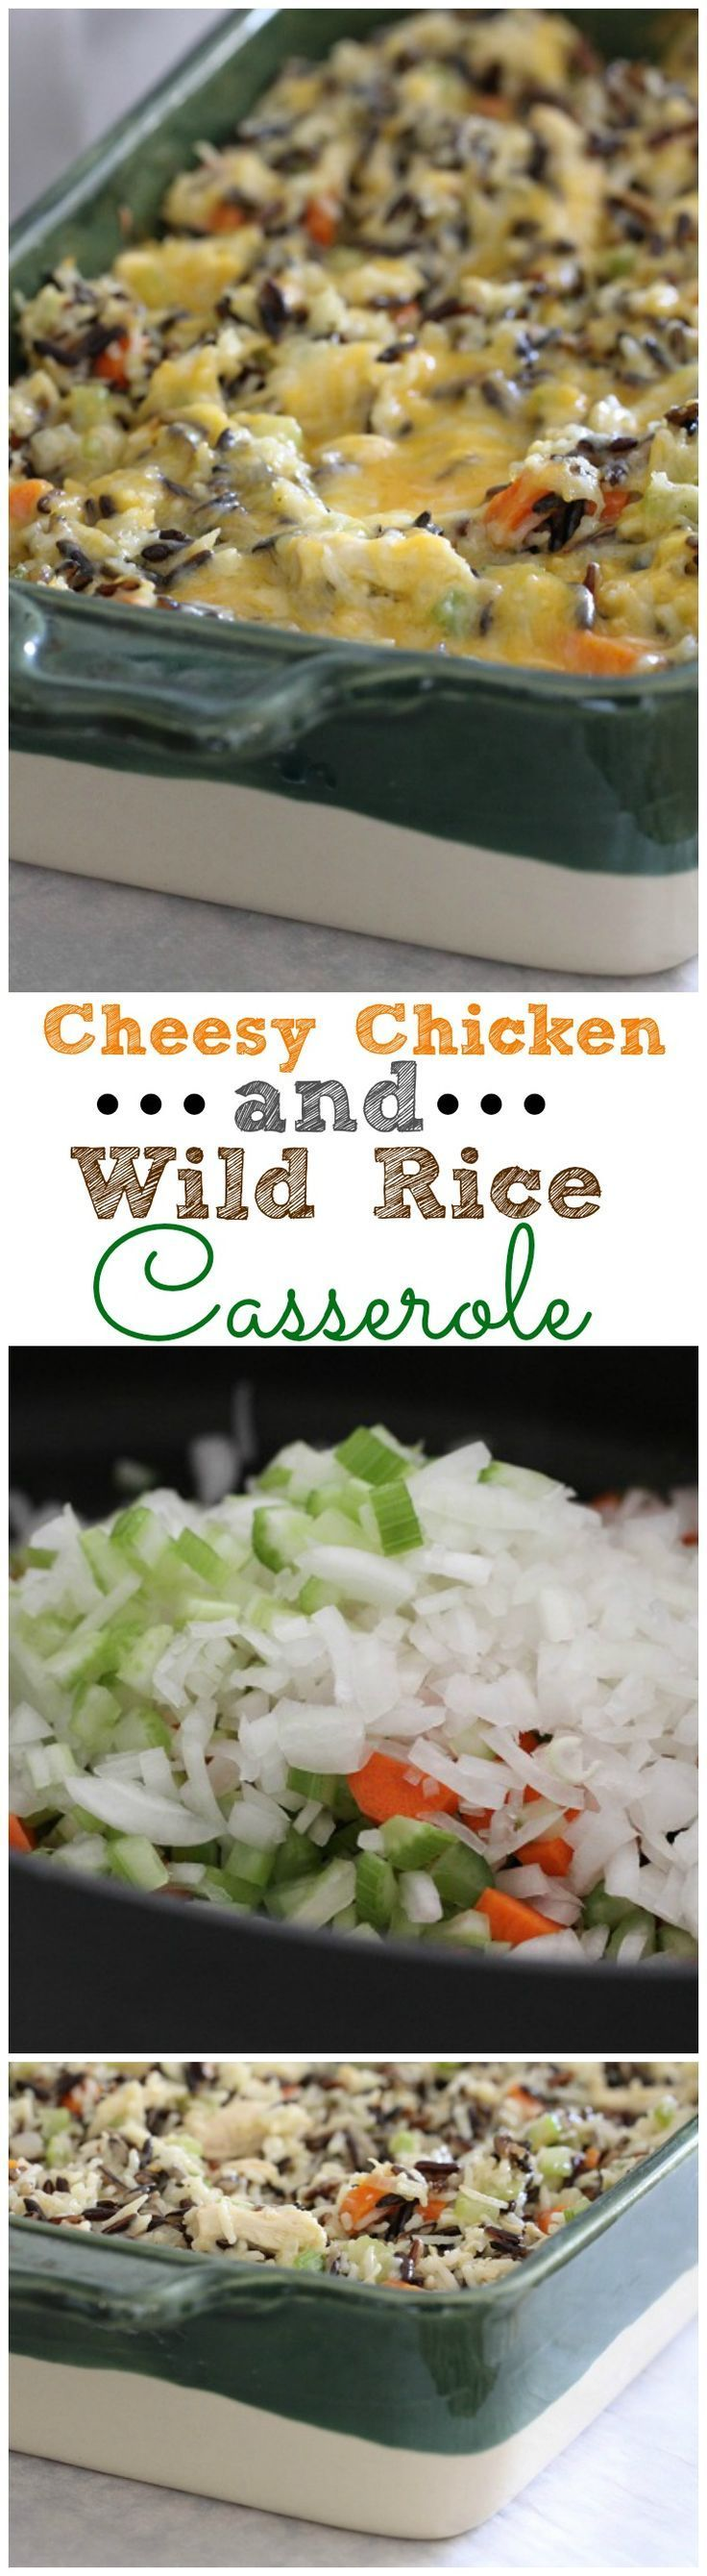 Cheesy Chicken and Wild Rice Casserole.  Great freezer meal to package up for friends in need of dinner!